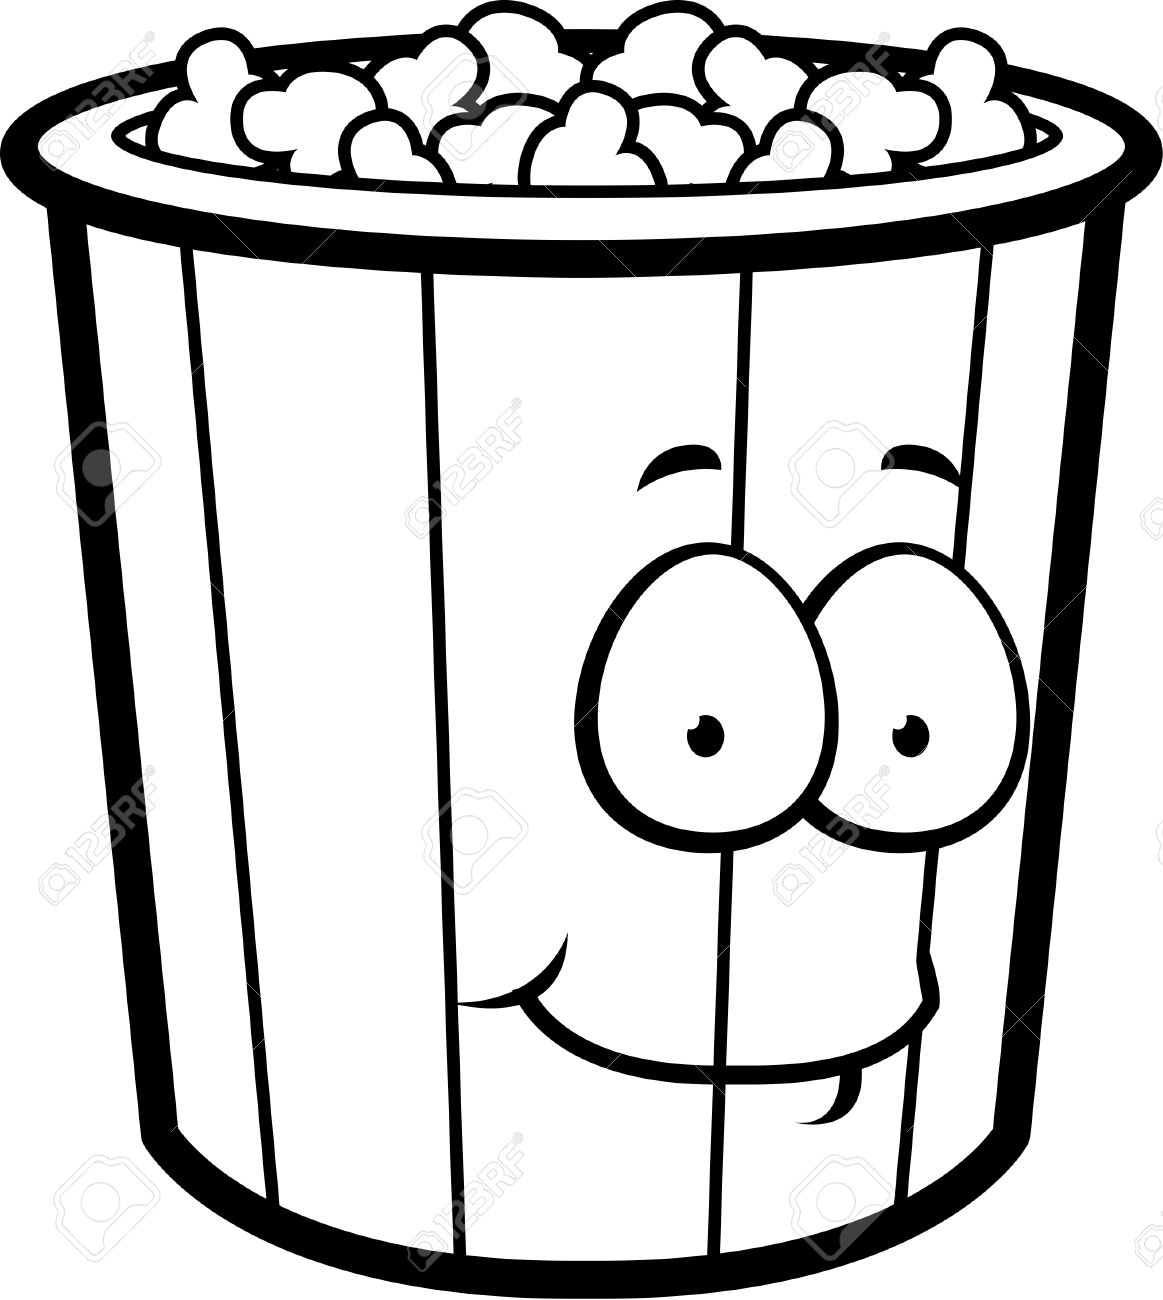 1163x1300 A Cartoon Popcorn Bucket Smiling And Happy. Royalty Free Cliparts